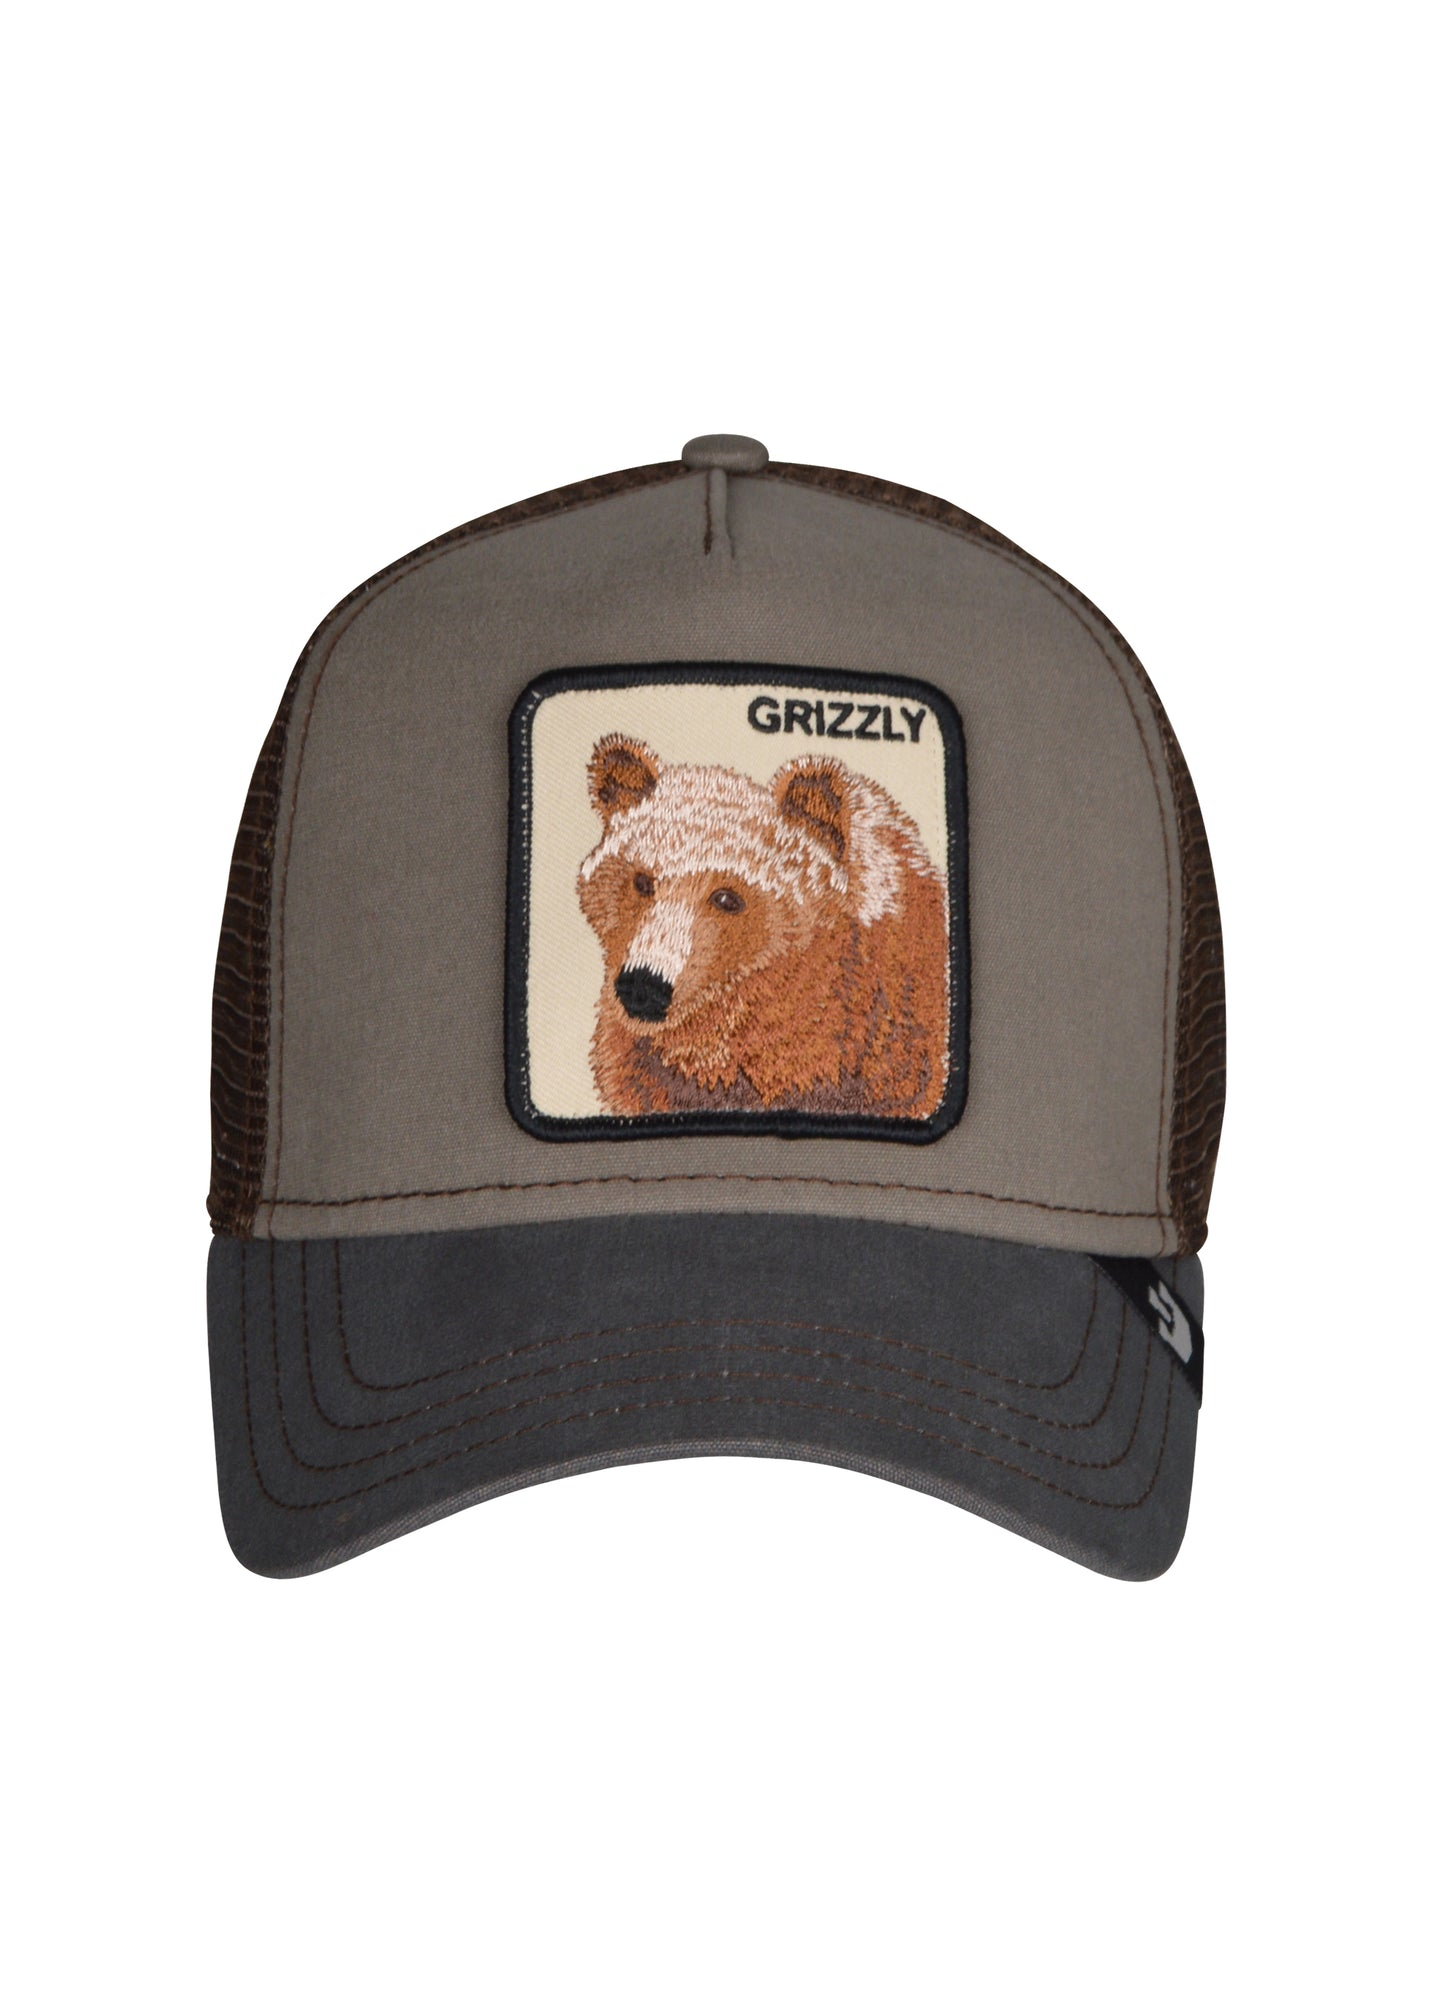 Goorin Bros - Grizzly Trucker Hat - 099534 - Grizzly